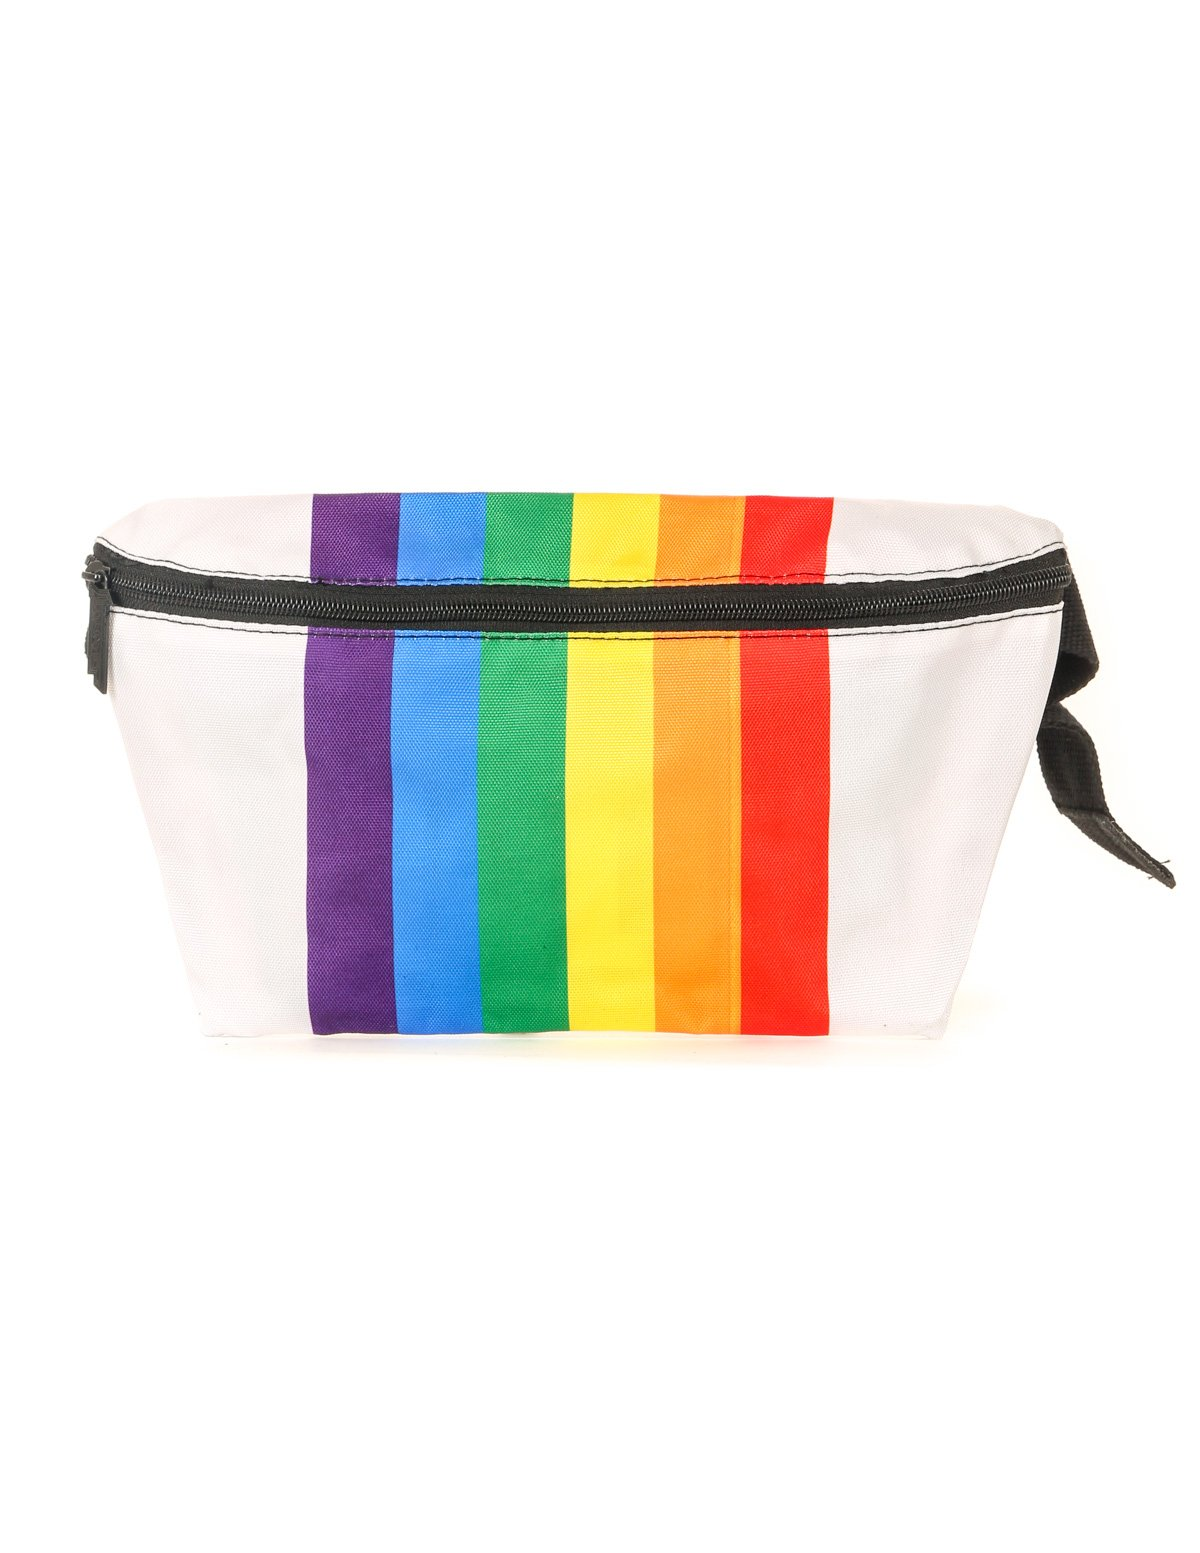 81457: FYDELITY- XL Ultra-Slim Fanny Pack: PRIDE Rainbow Stripe